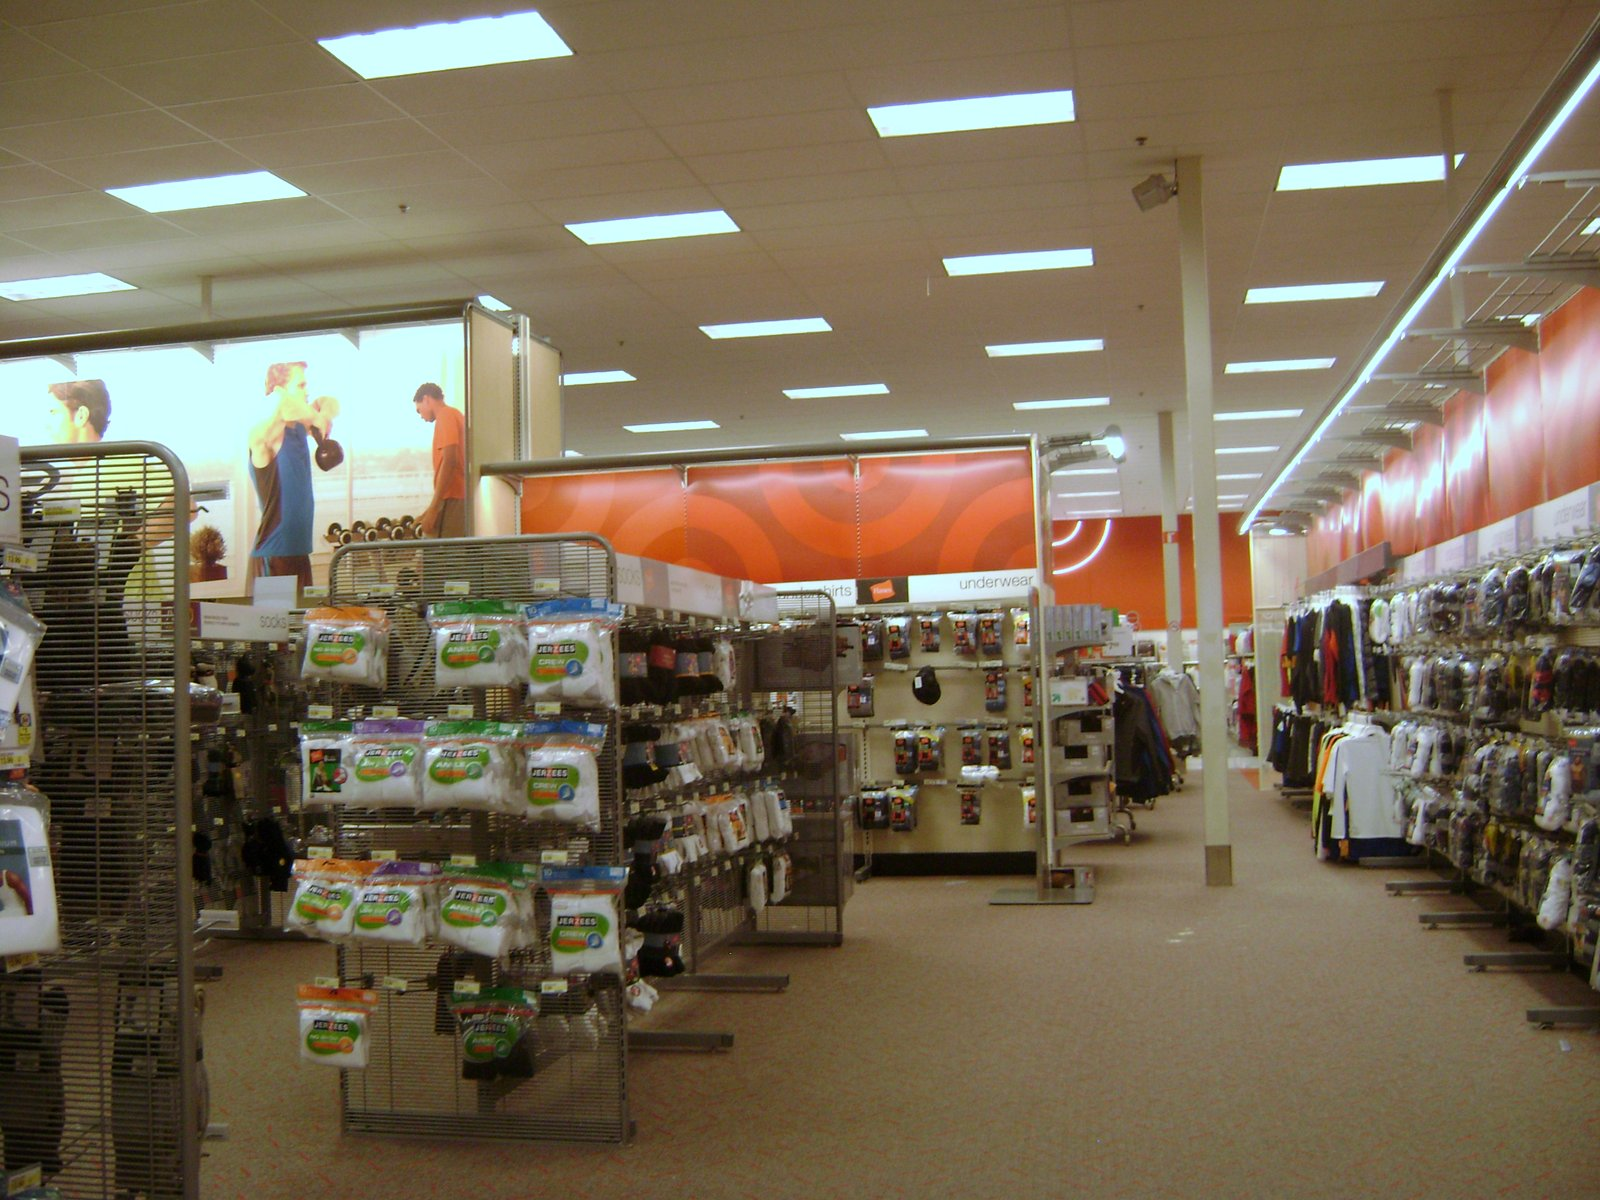 TARGET SUCKS!: If you think Target Sucks you came to the right place!